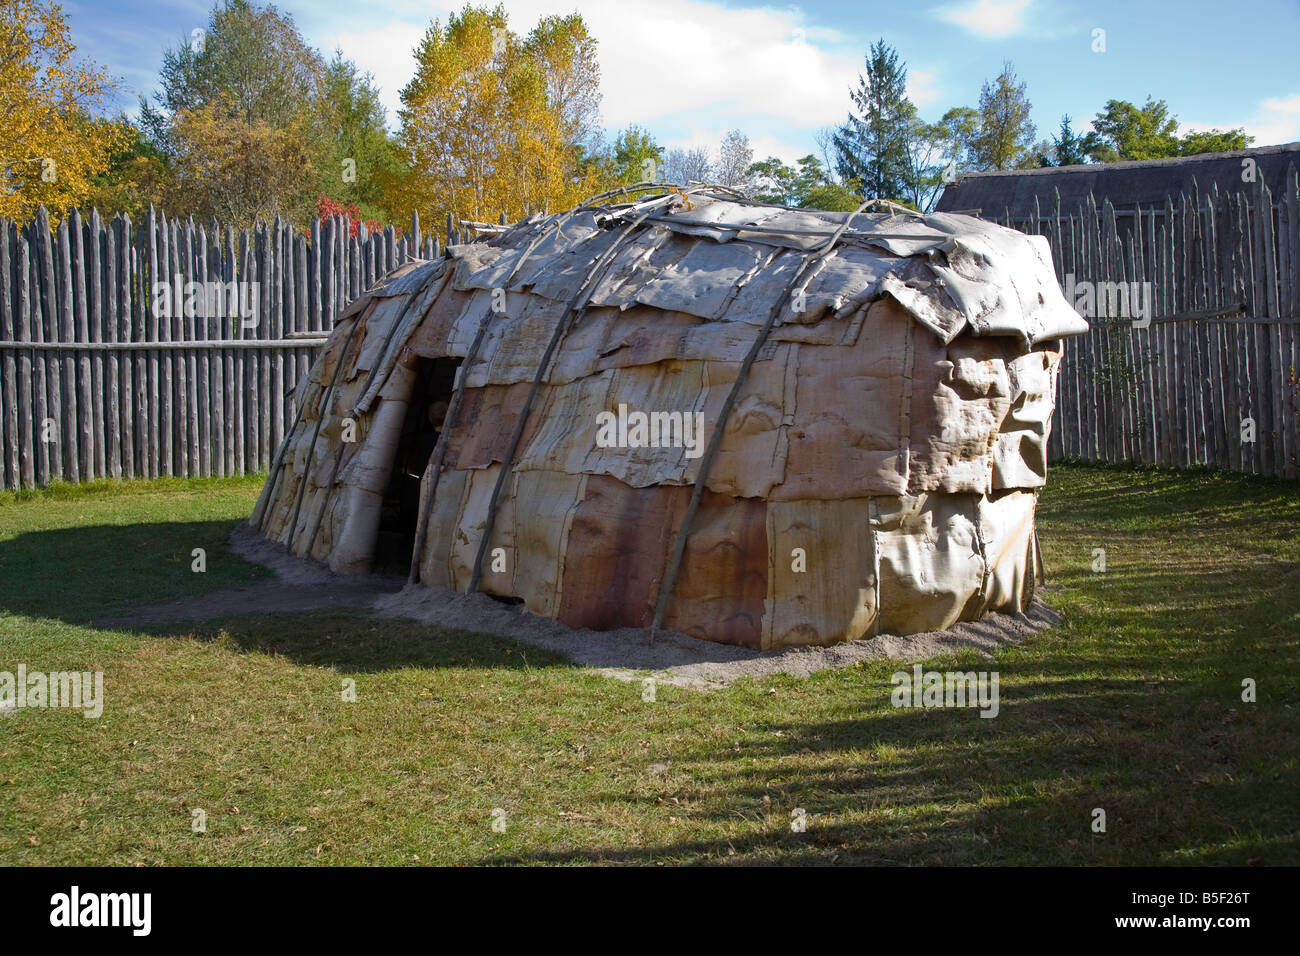 Birch Bark Huron Longhouse at the authentic Huron Indian Village in Midland Ontario Canada - Stock Image